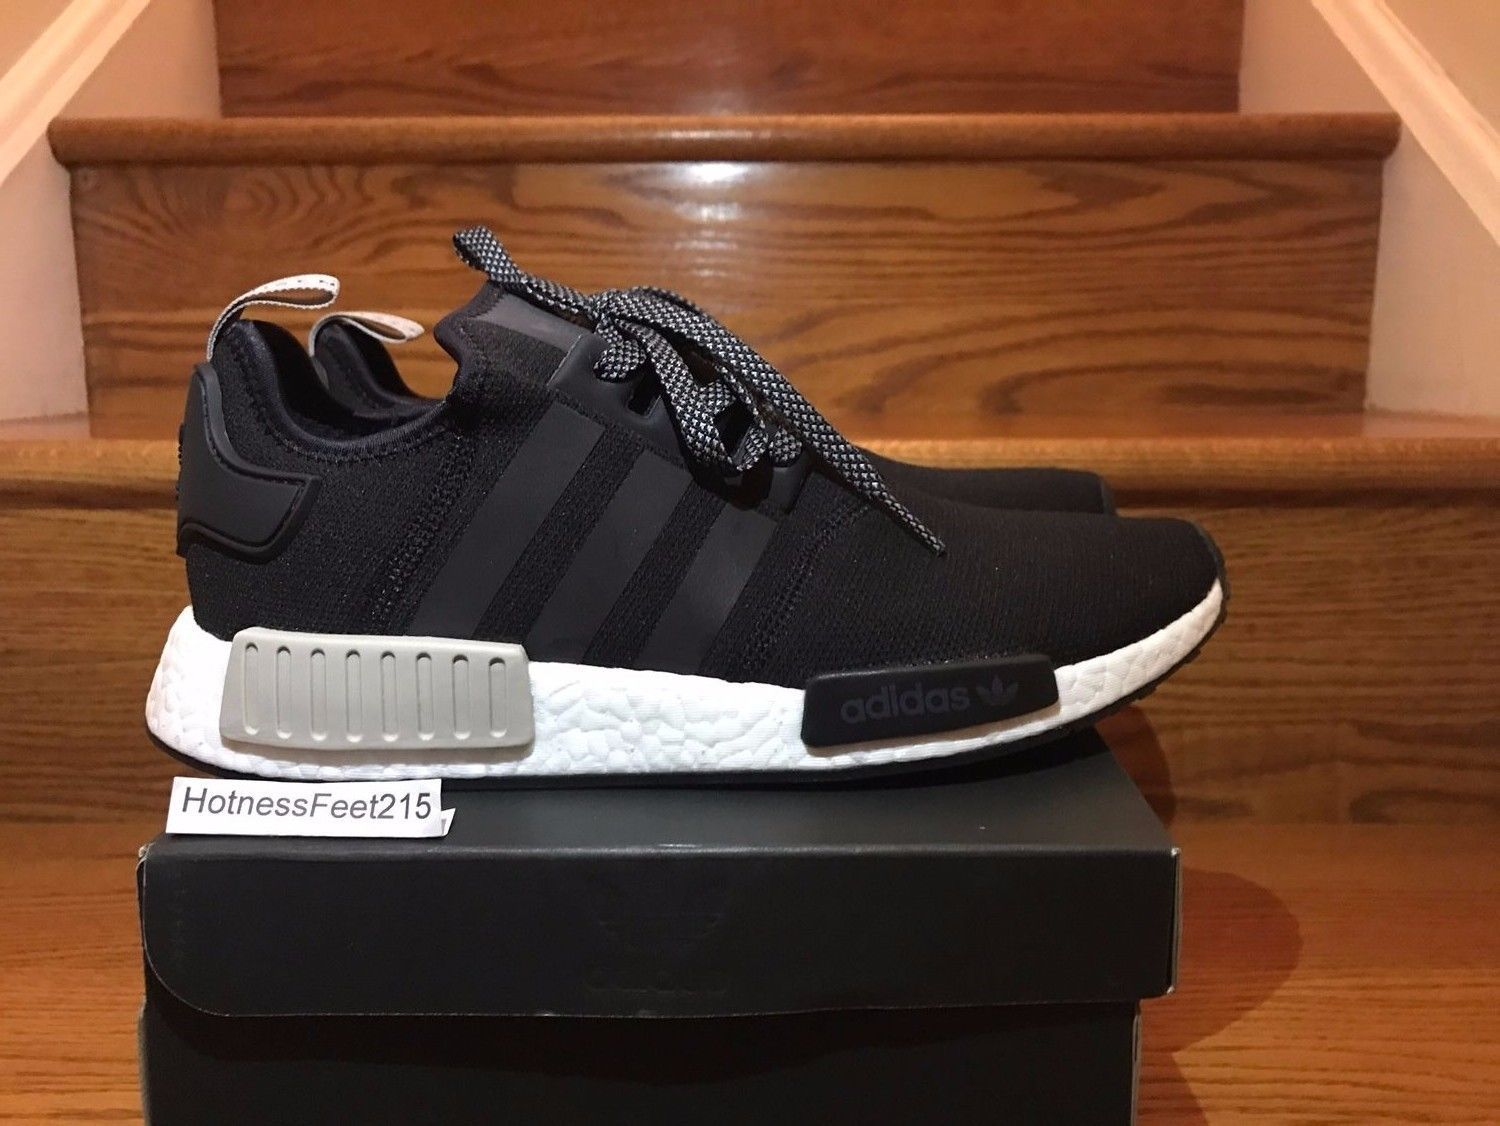 cc9f94880 Adidas NMD R1 Runner Nomad Boost S76847 Black Tan White Men Size 8 ...